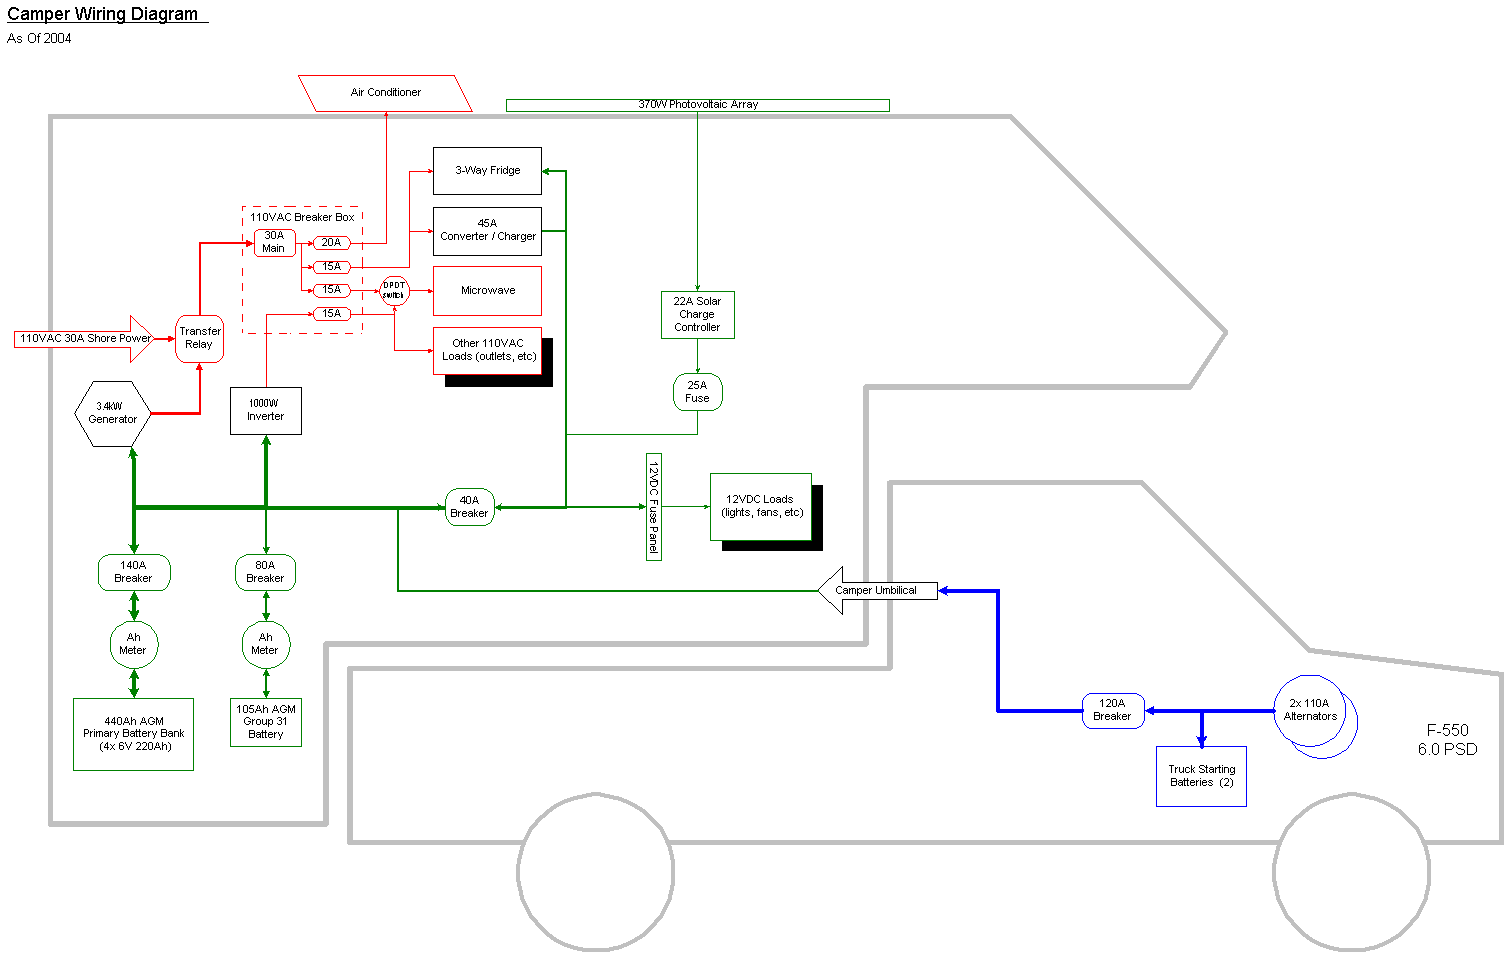 2004Diagram camper wiring diagram camper wiring diagram vw 1969 \u2022 wiring RV 30 Amp Breaker at virtualis.co